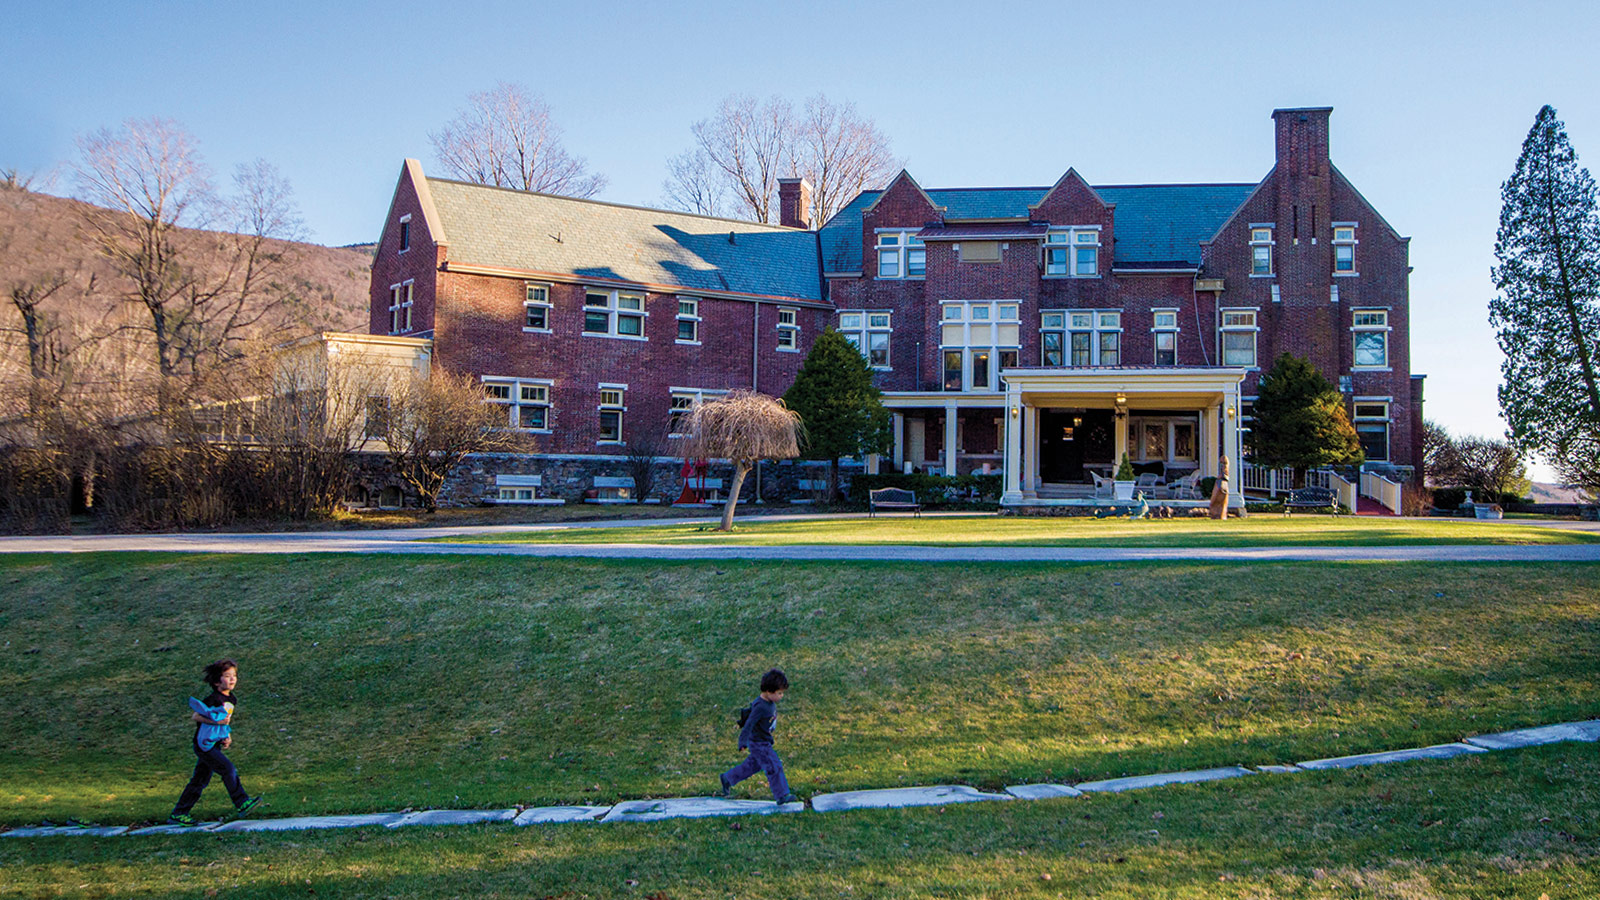 Boy walking on a path in front of The Wilburton Inn which is located on the 30-acre Wilburton Estate in Manchester, Vermont.